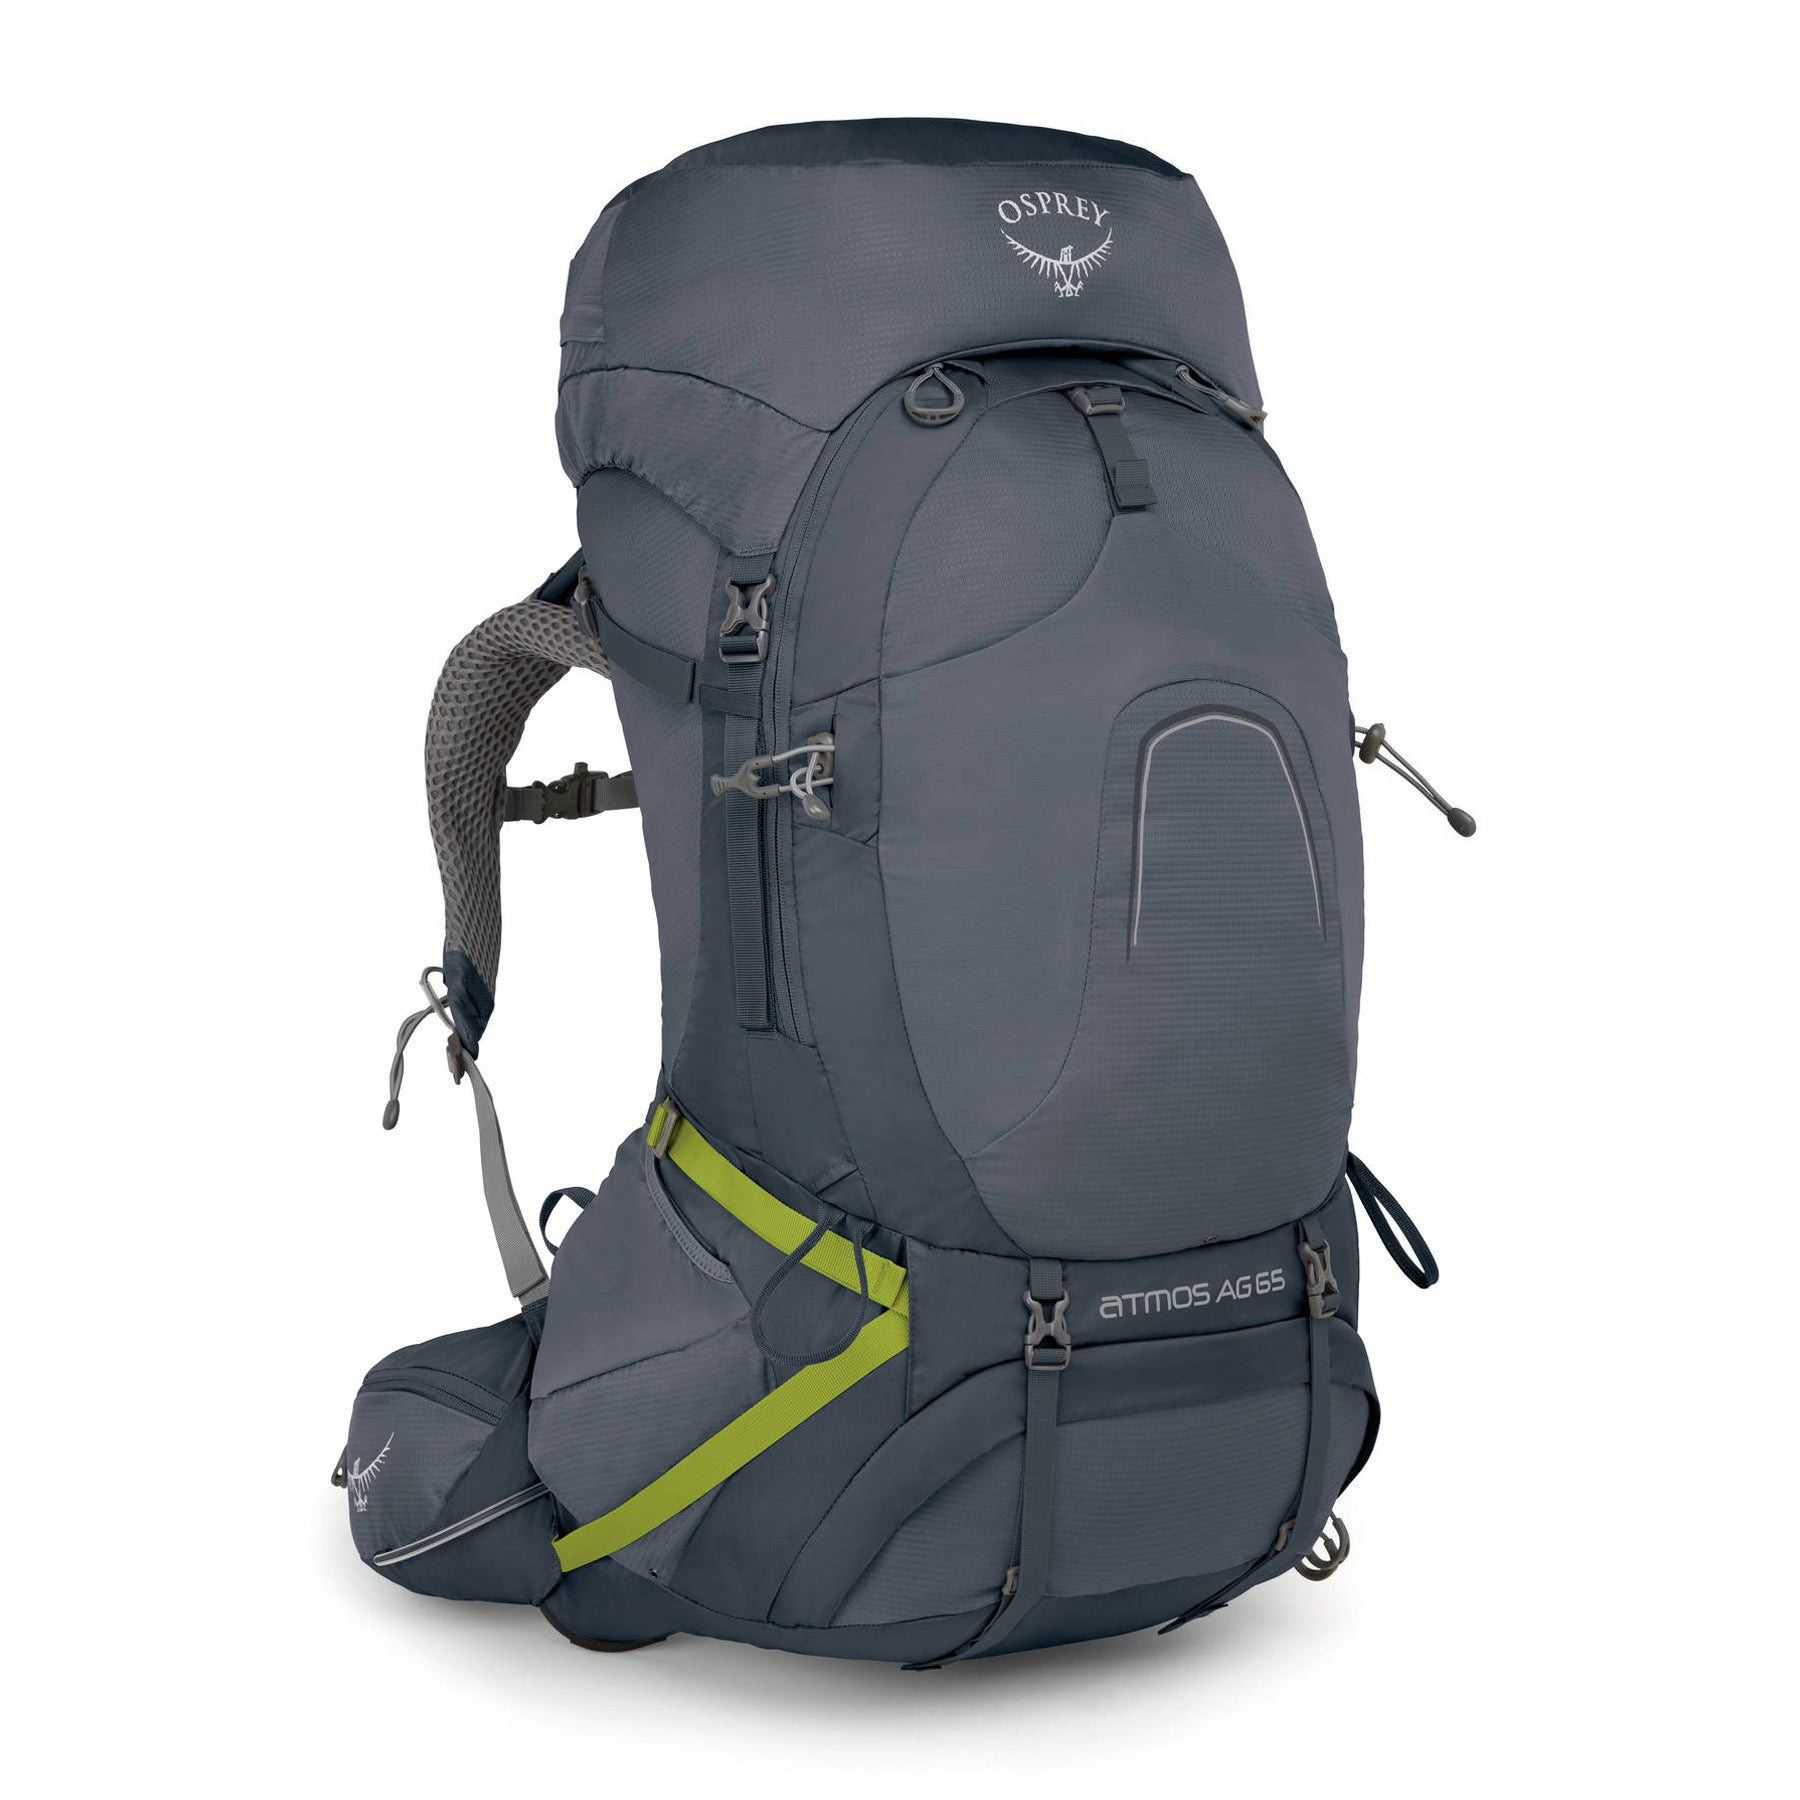 Osprey Atmos Ag 65 Hiking Backpack - Abyss Grey